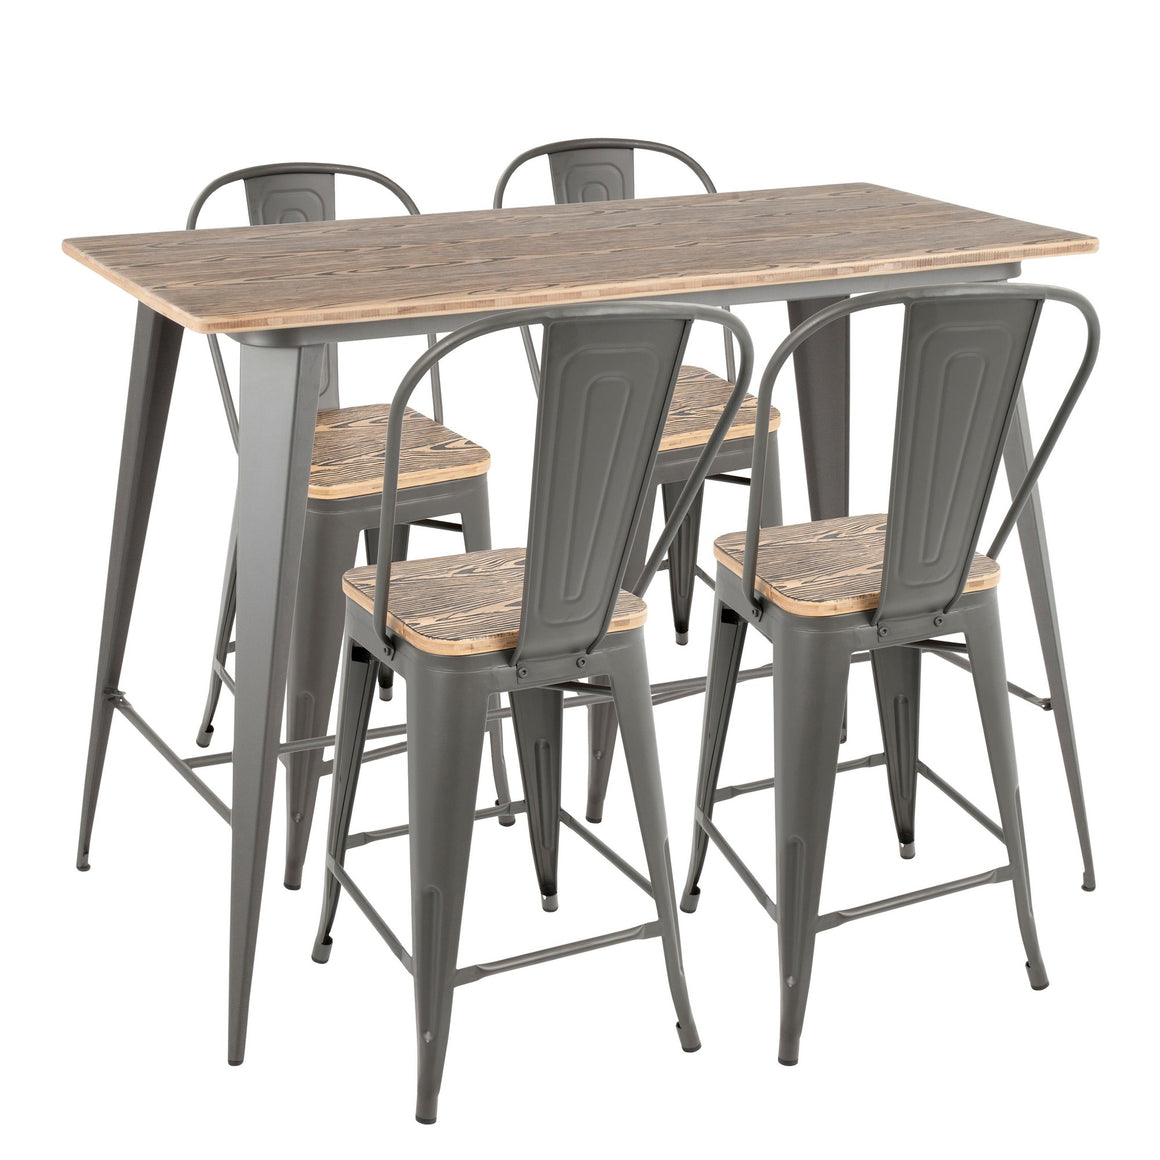 Oregon 5-Piece Industrial High Back Counter Set in Grey and Wood-Pressed Grain Bamboo by LumiSource